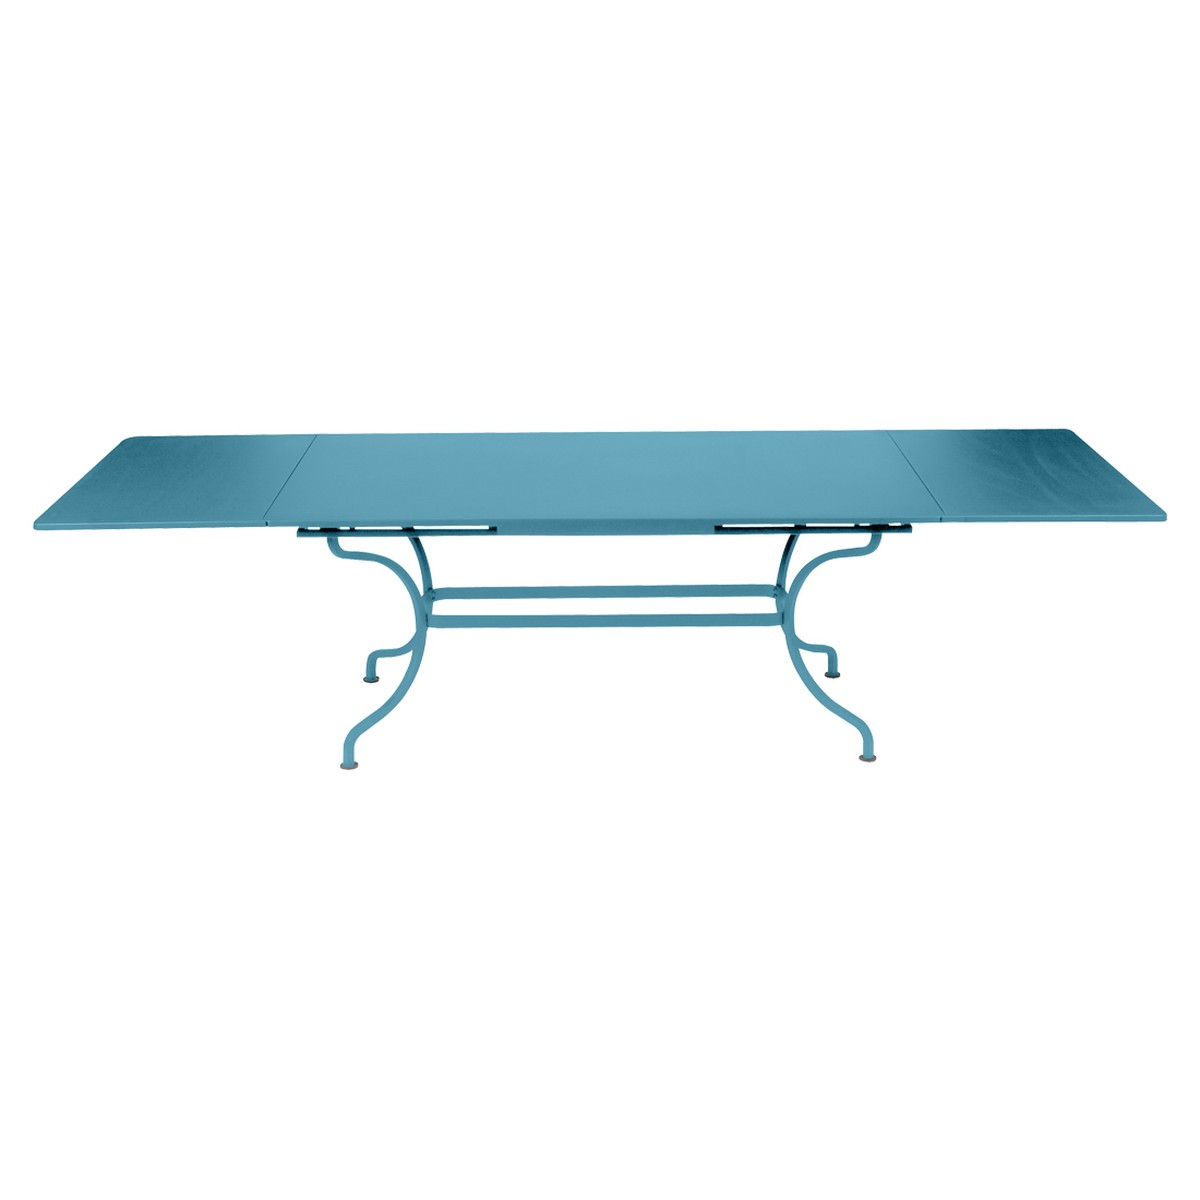 Fermob ROMANE Table Romane rectangulaire à allonges Bleu turquoise 200/300x100cm